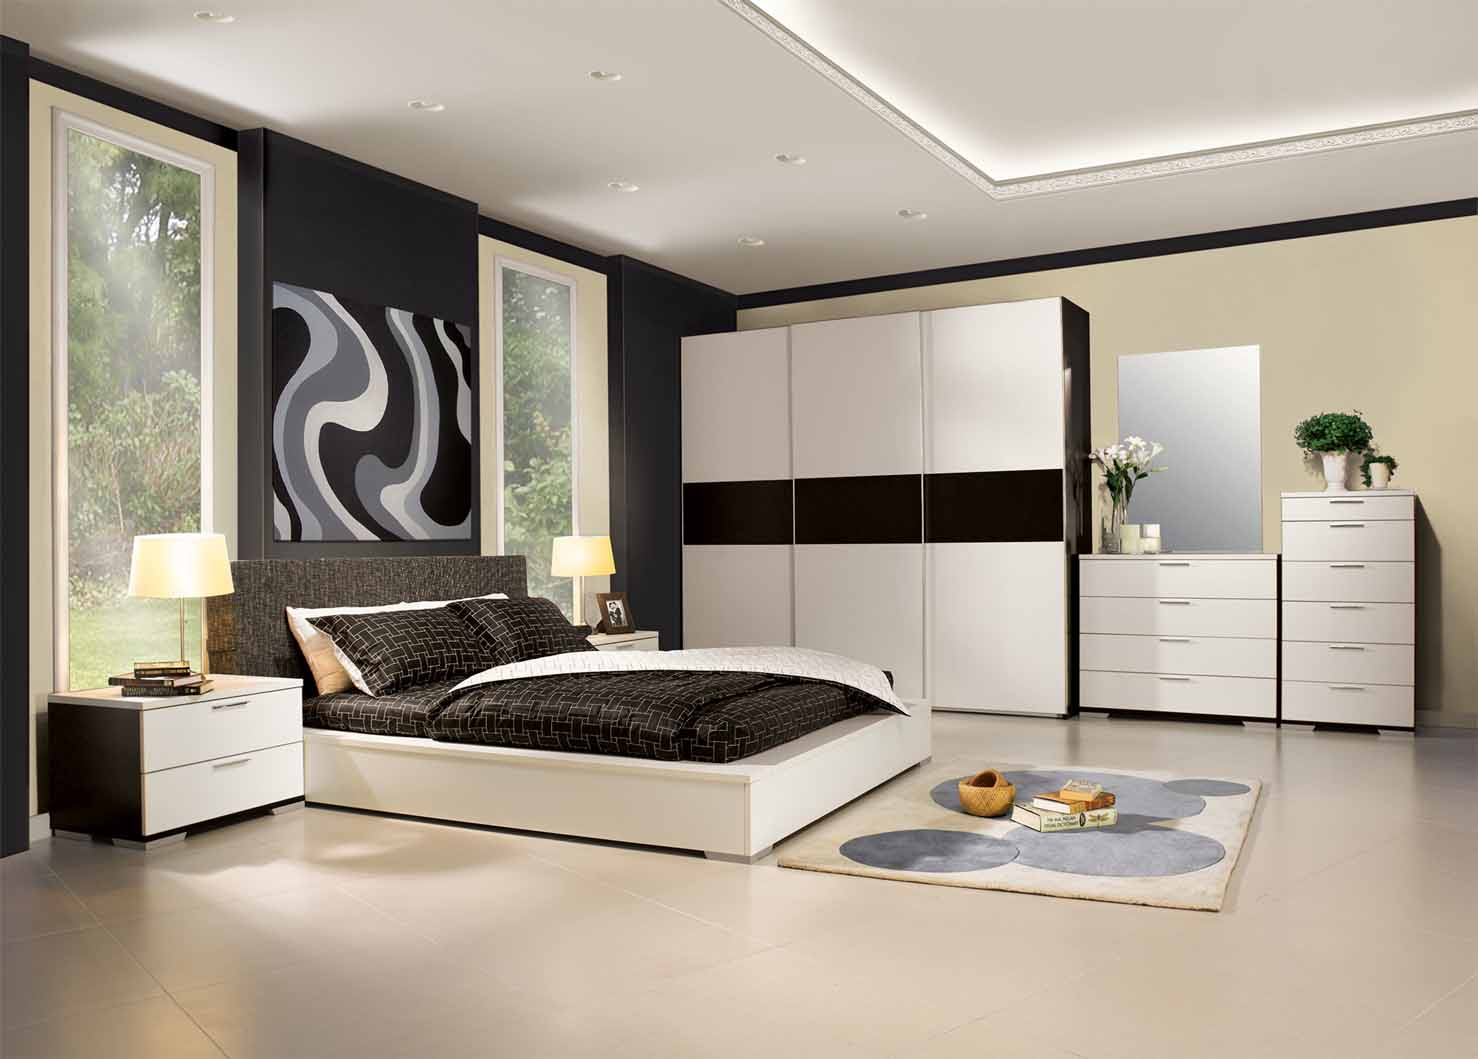 Decoration ideas for apartments  bedrooms  home June 2013